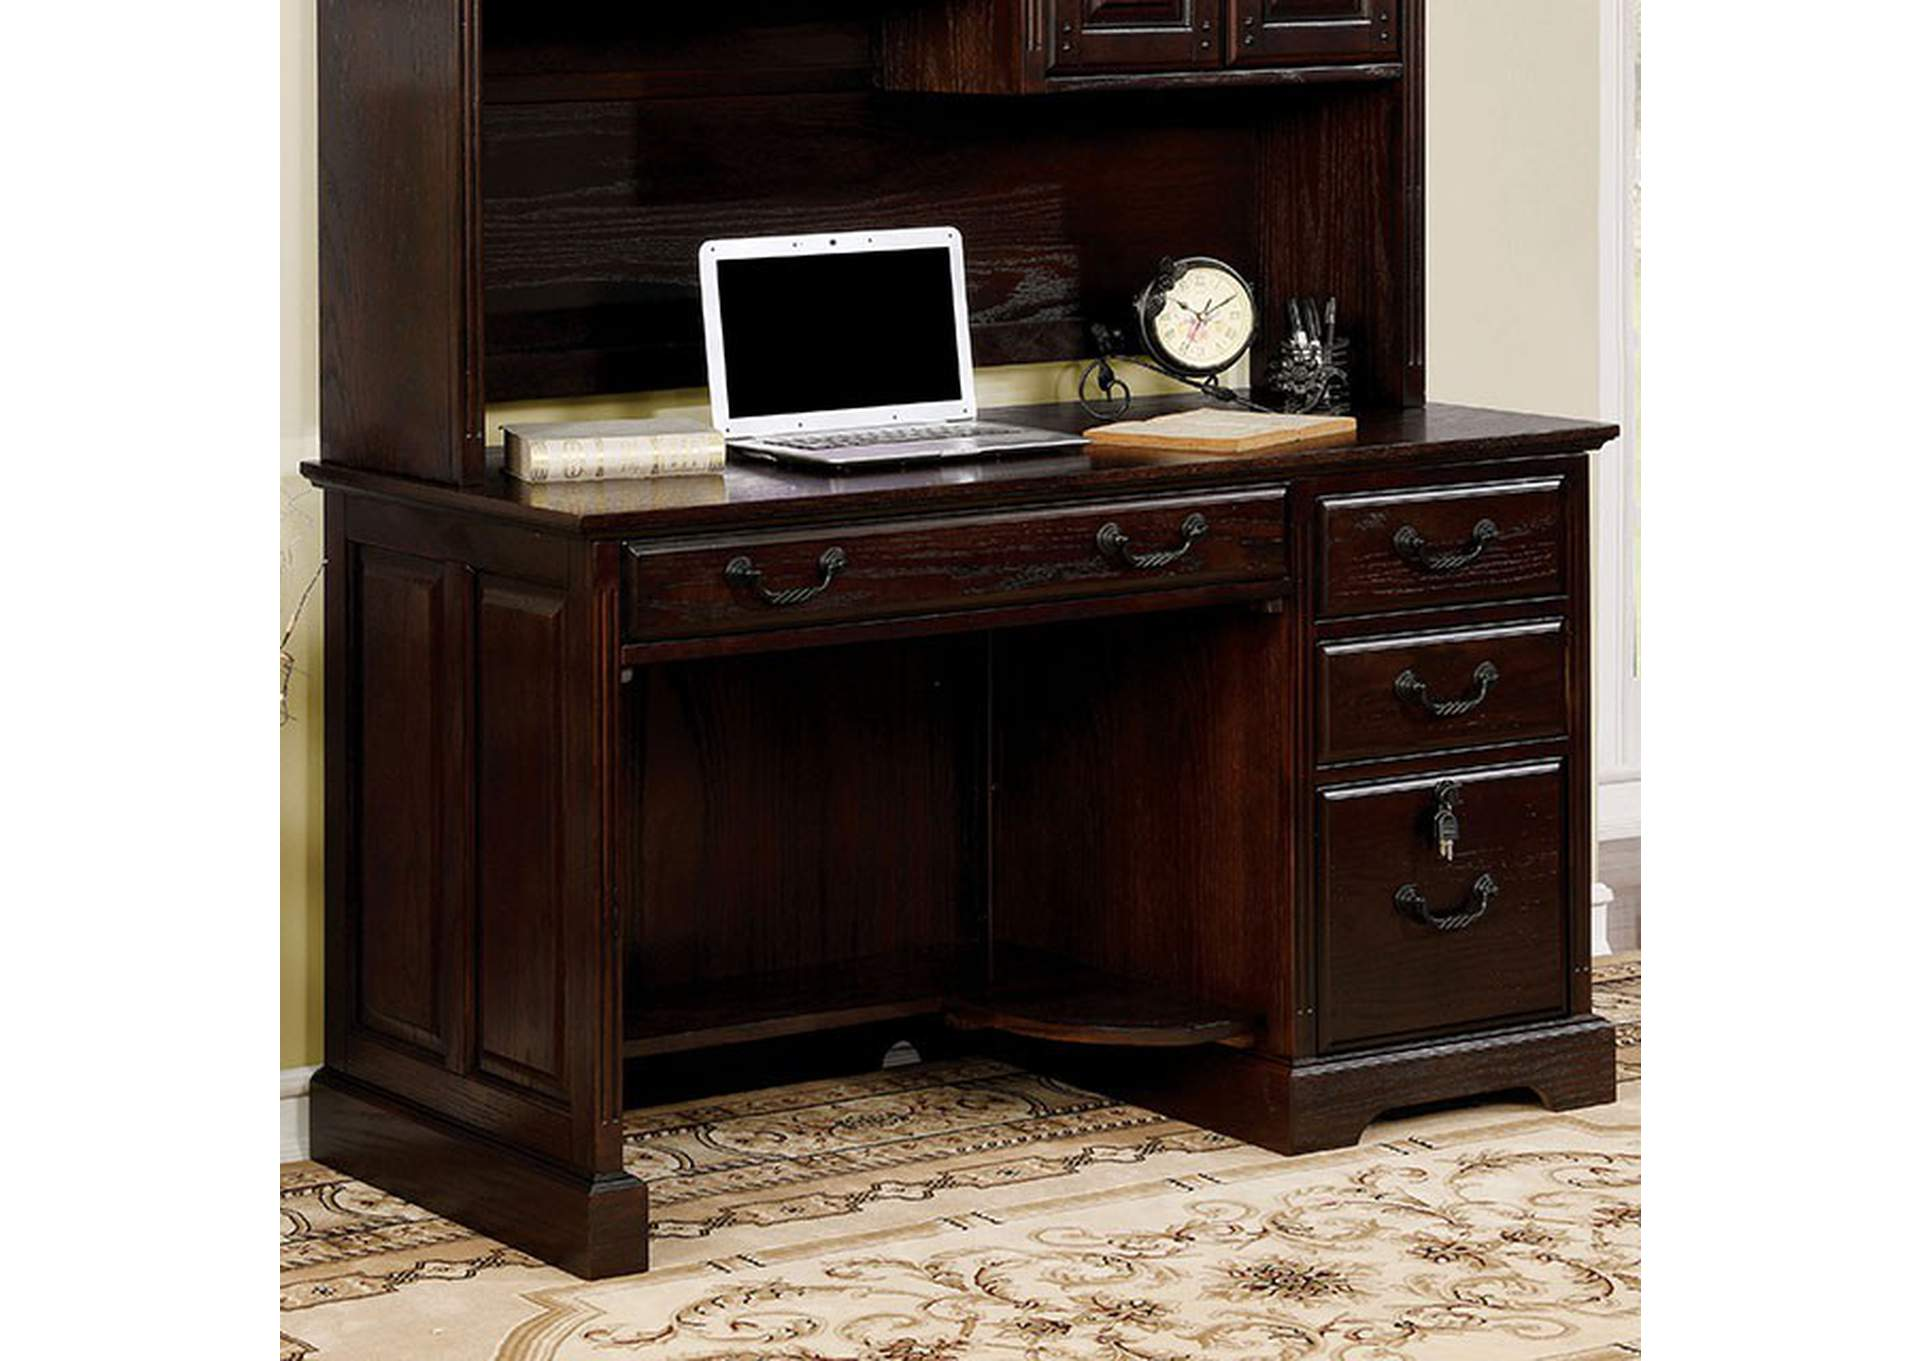 Design Center La Habra Ca Tami Dark Walnut Credenza Desk